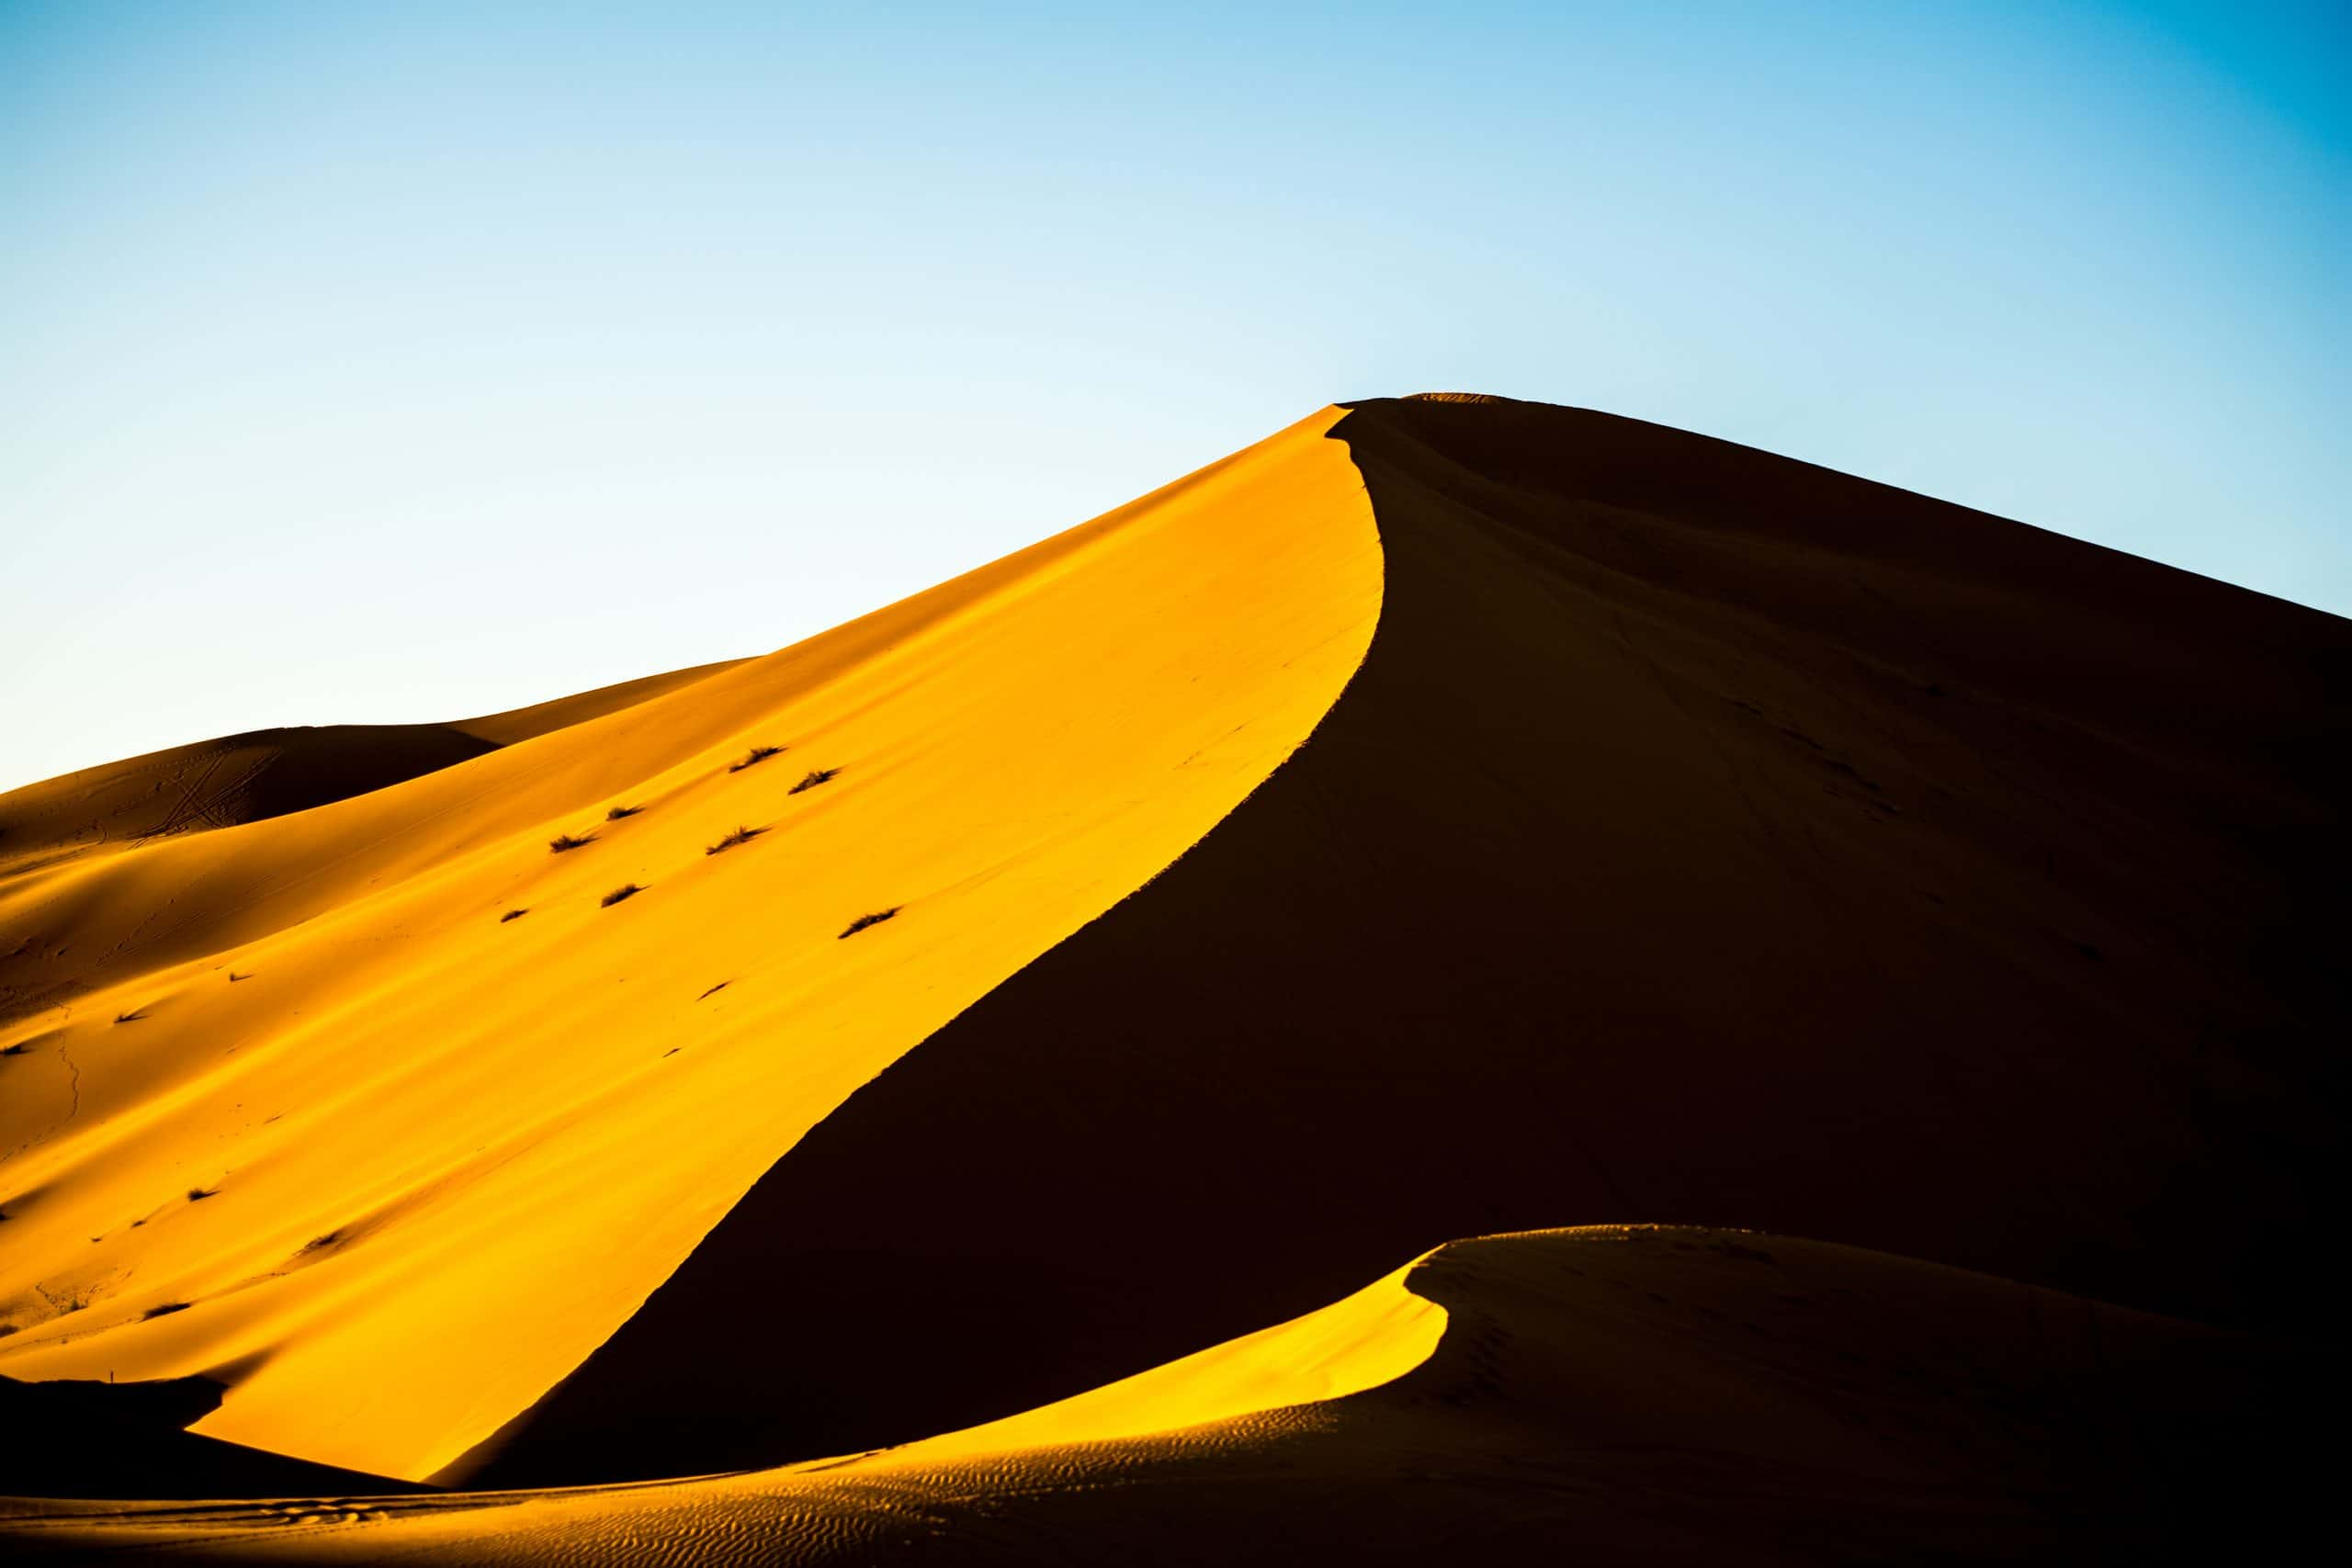 Photography Trip - Moroccan Deserts Landscapes